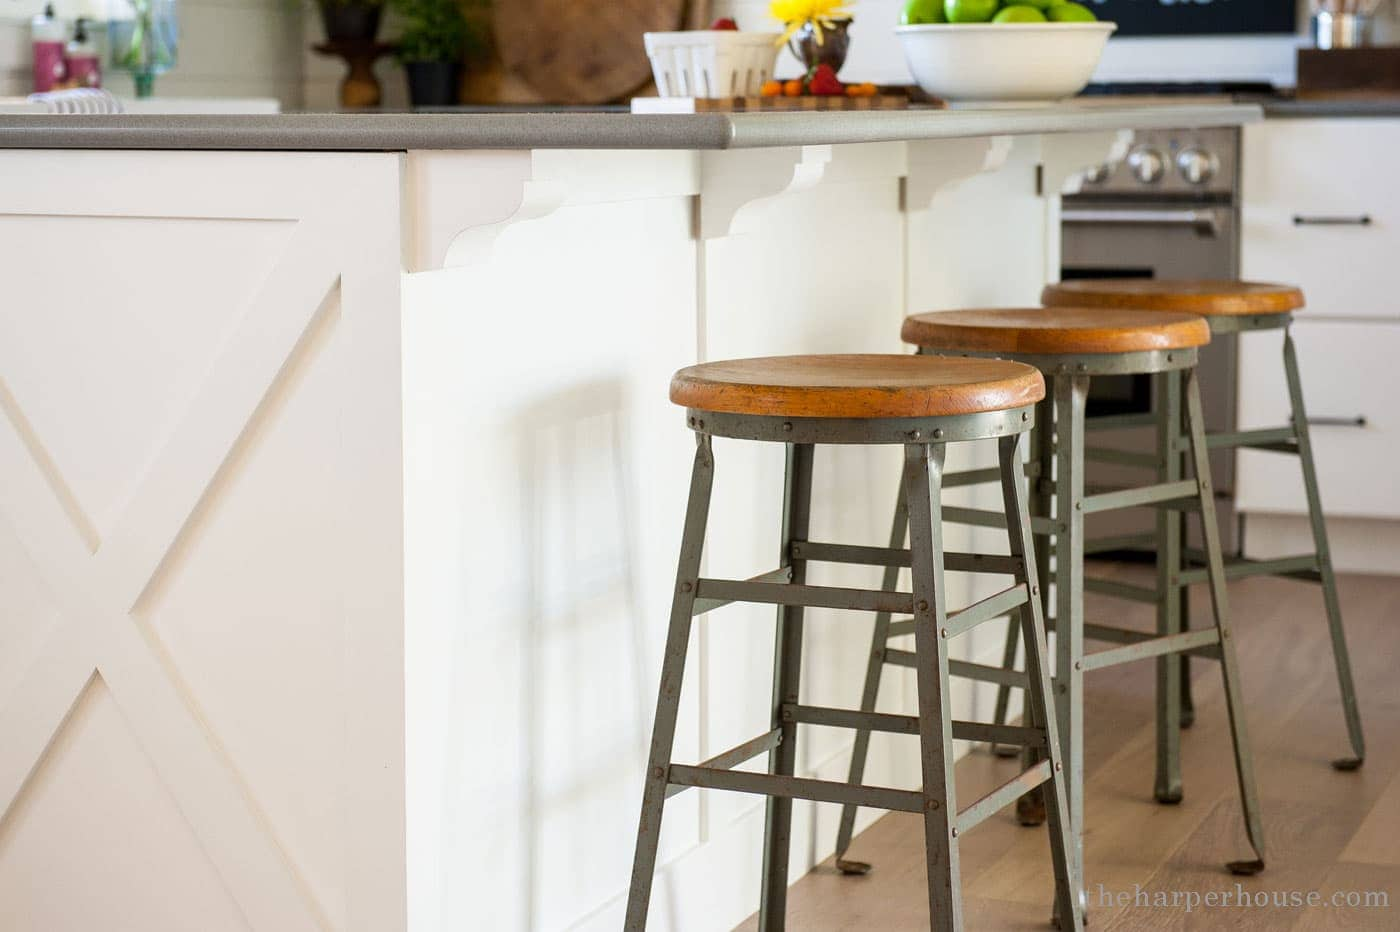 Farmhouse Style Kitchen Details | The Harper House